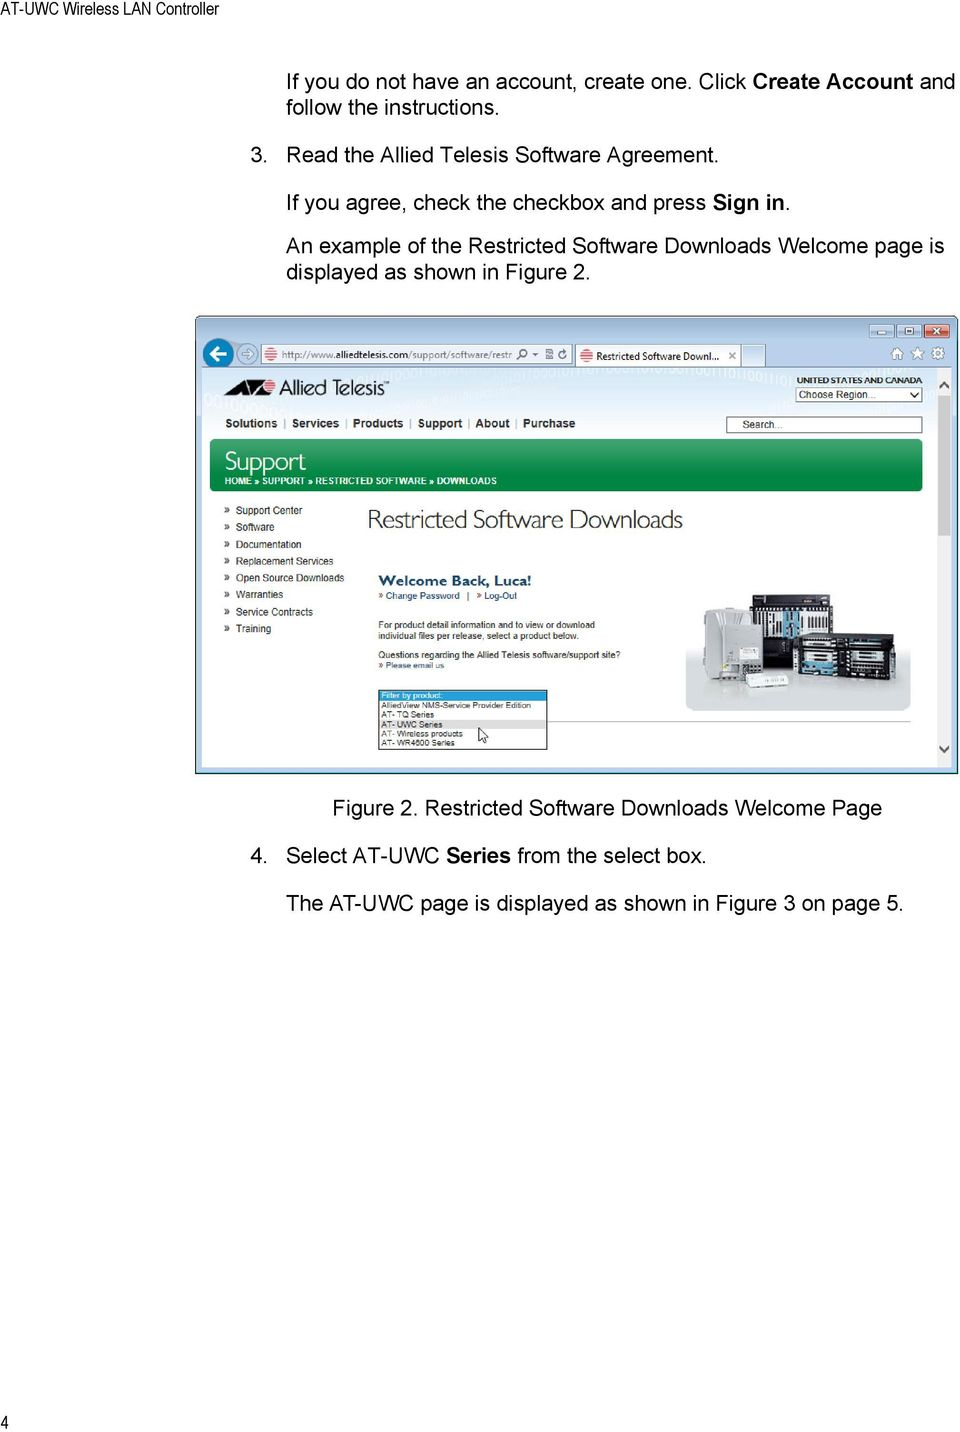 An example of the Restricted Software Downloads Welcome page is displayed as shown in Figure 2.